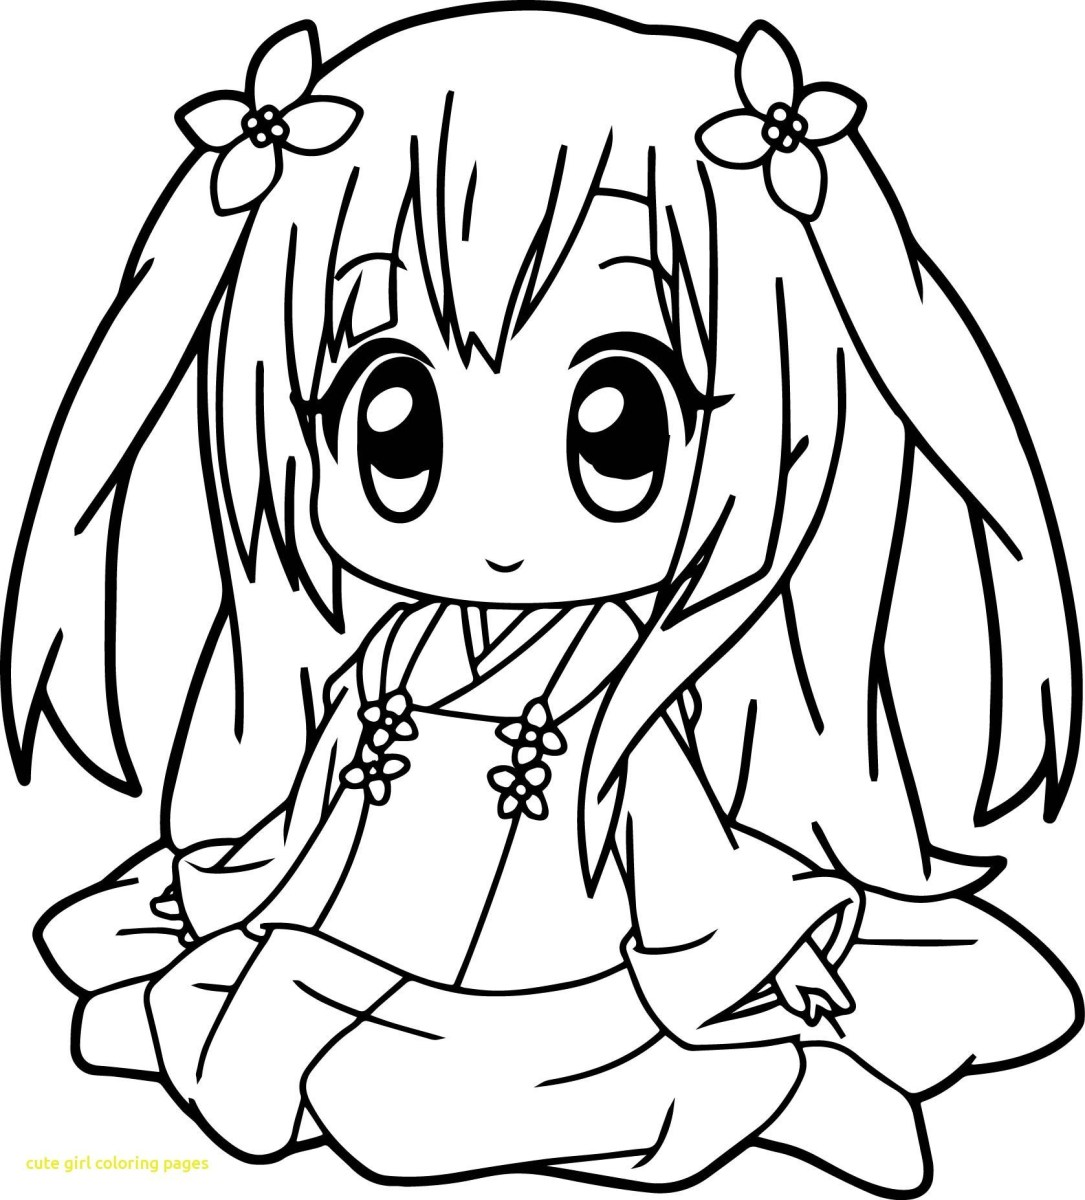 Transparent Anime Lineart Png - Anime Girl Crying Coloring Page ... | 1200x1085